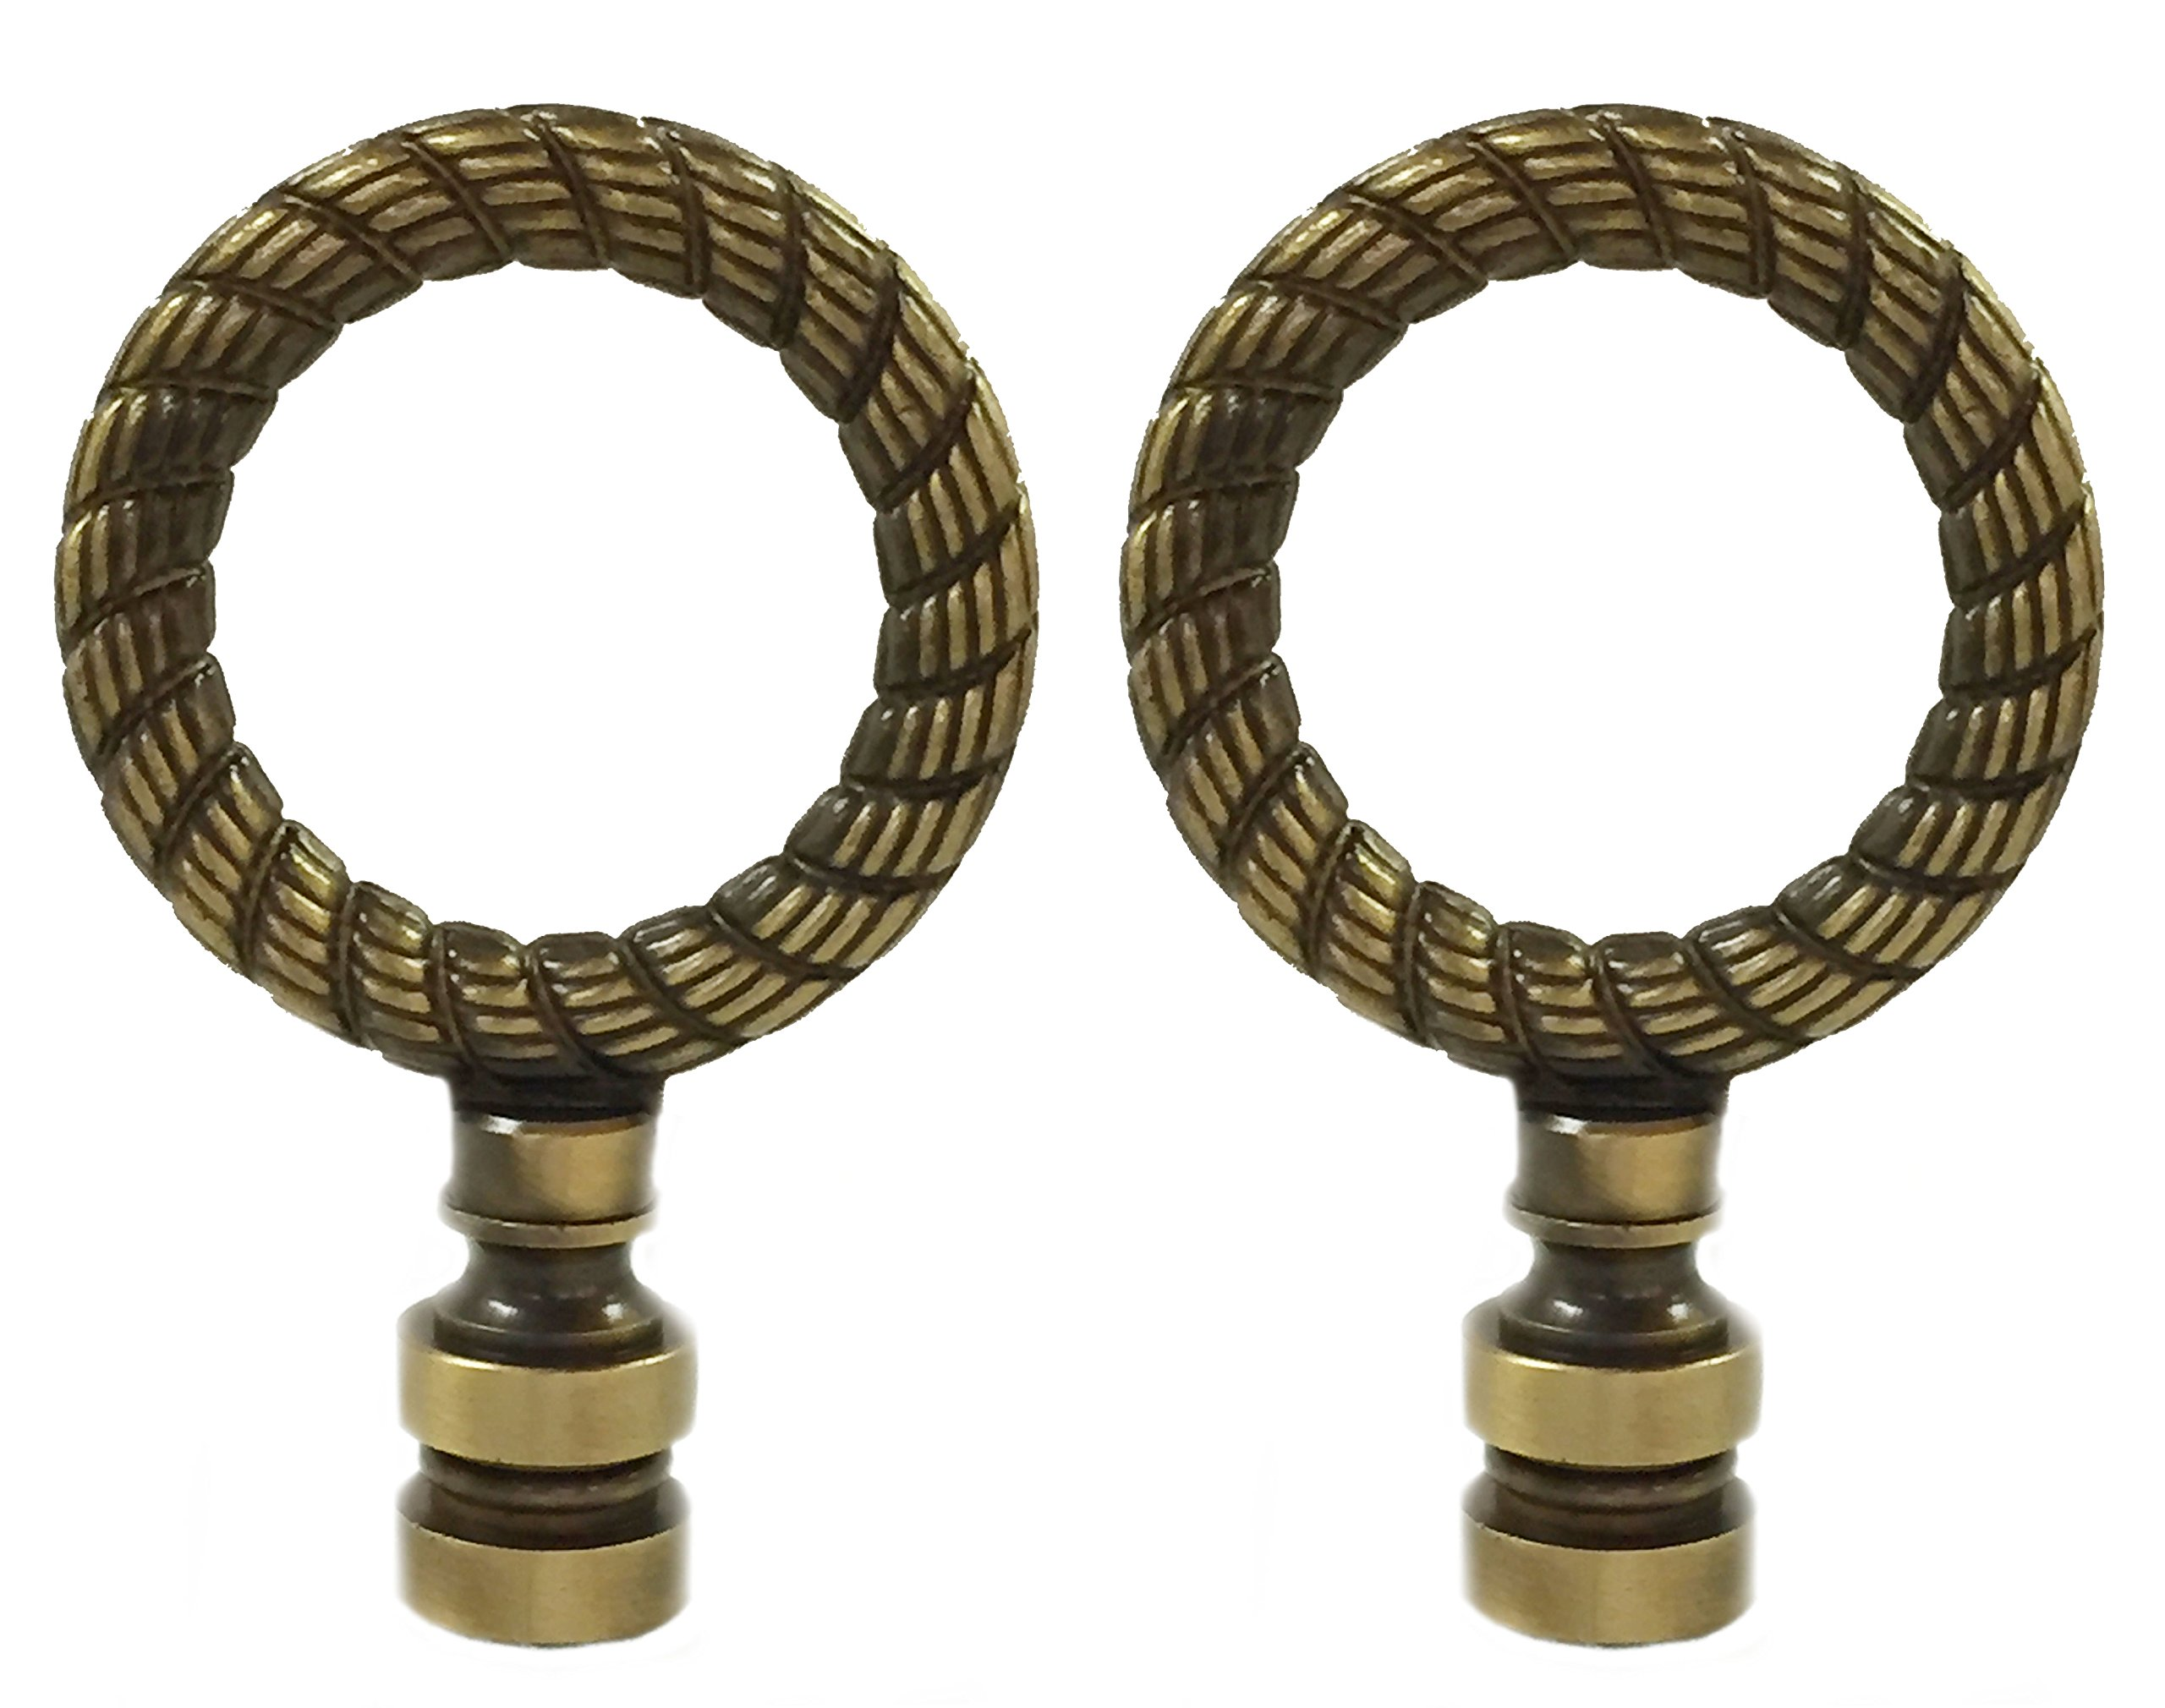 Royal Designs Rope Wreath Lamp Finial for Lamp Shade- Antique Brass Set of 2